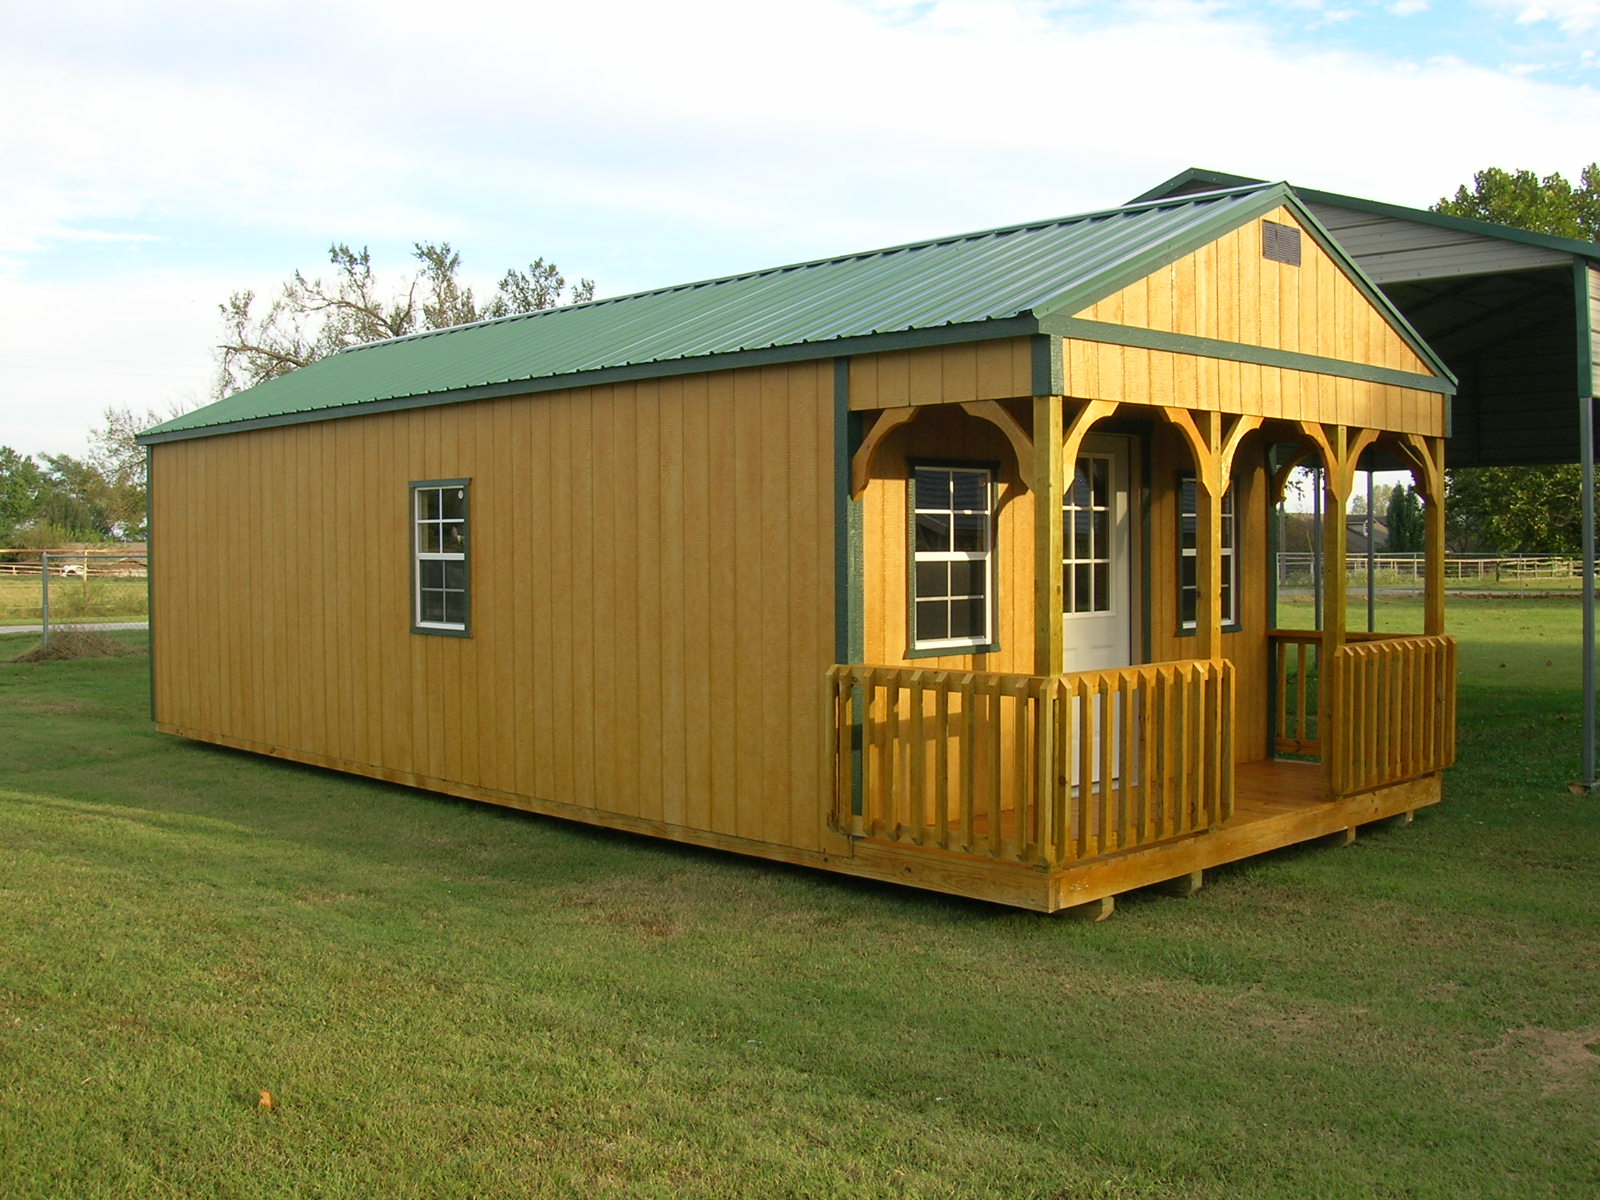 PORTABLE BUILDINGS | Garages, Barns, Portable Storage ...